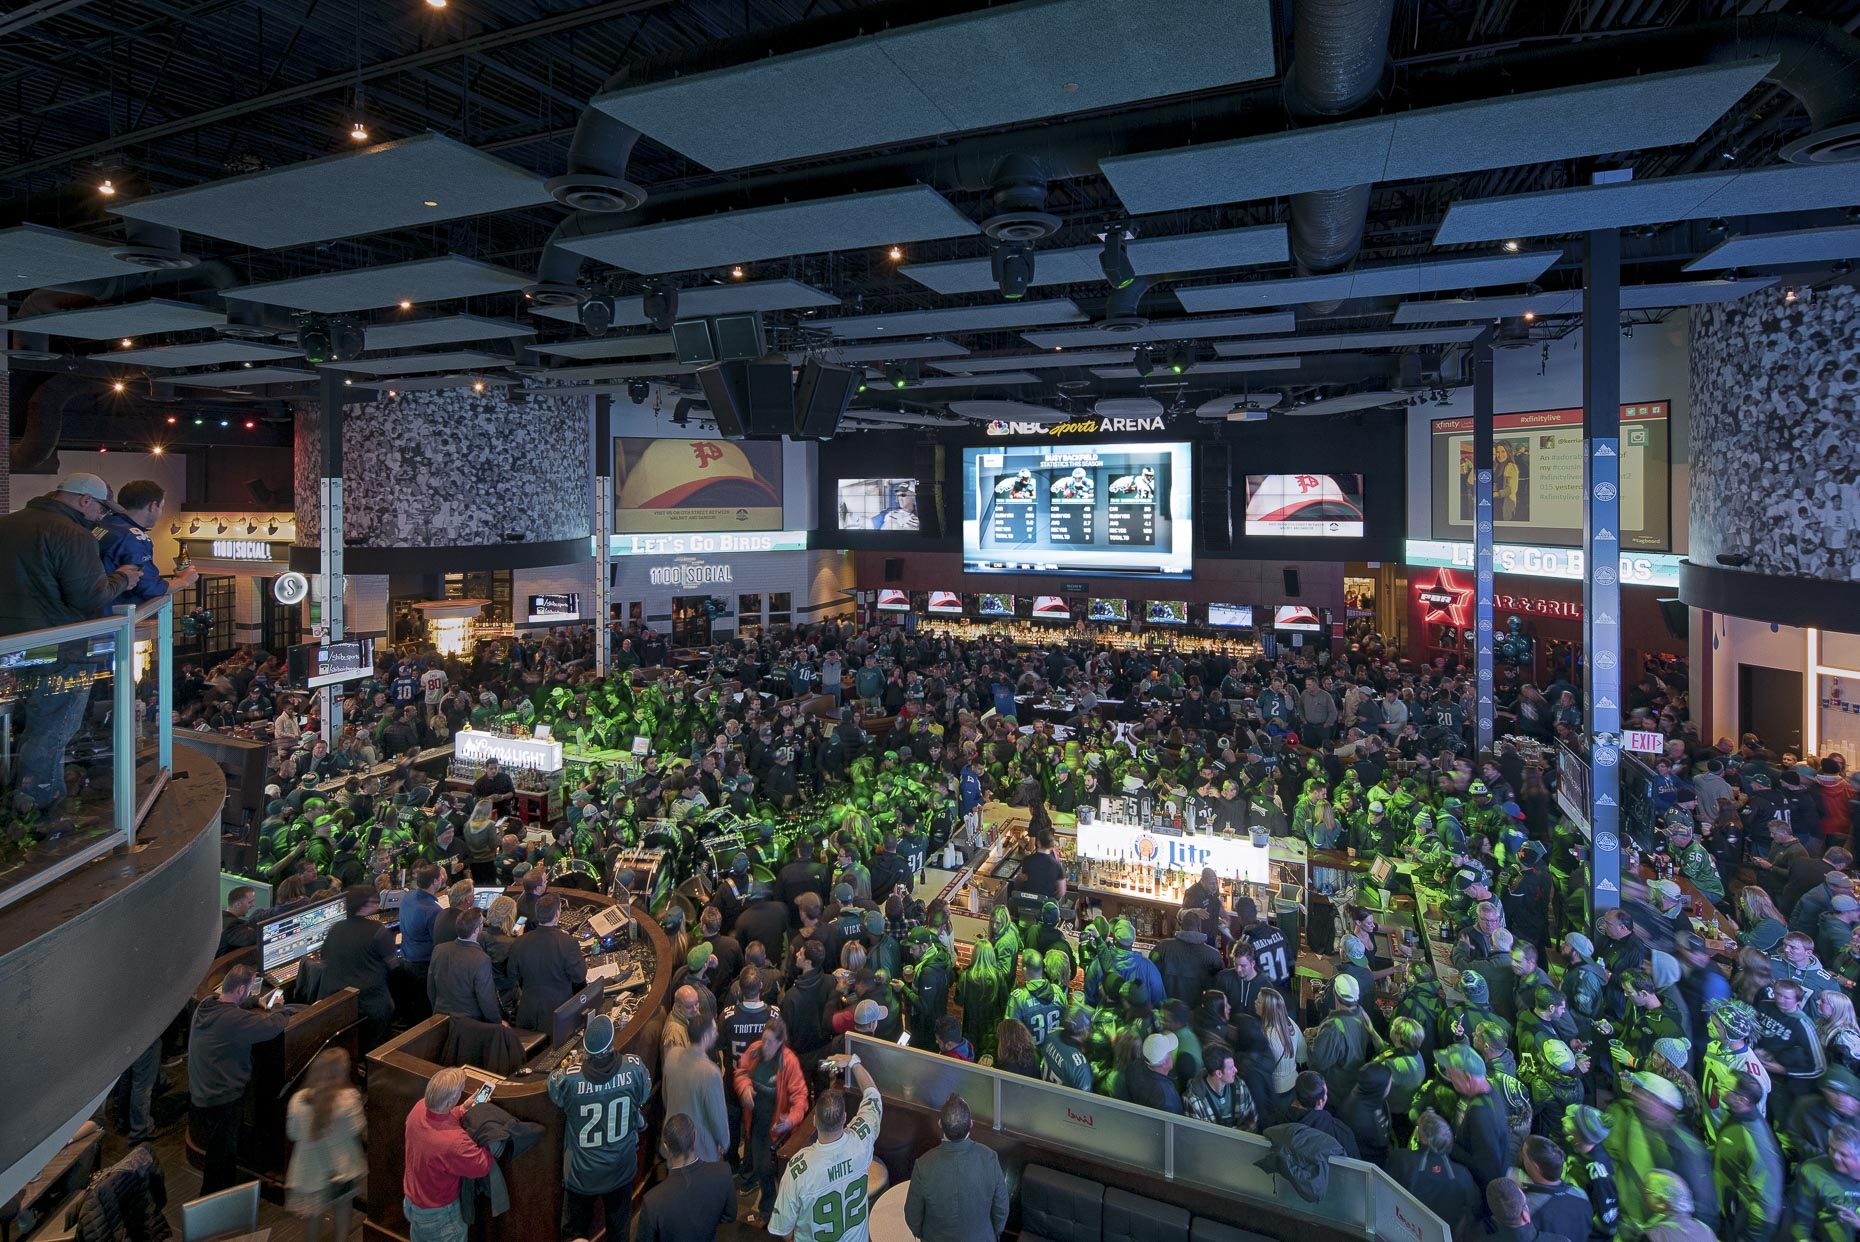 XFinityLive! Philadelphia by FRCH Design Worldwide photographed by Lauren K Davis based in Columbus, Ohio